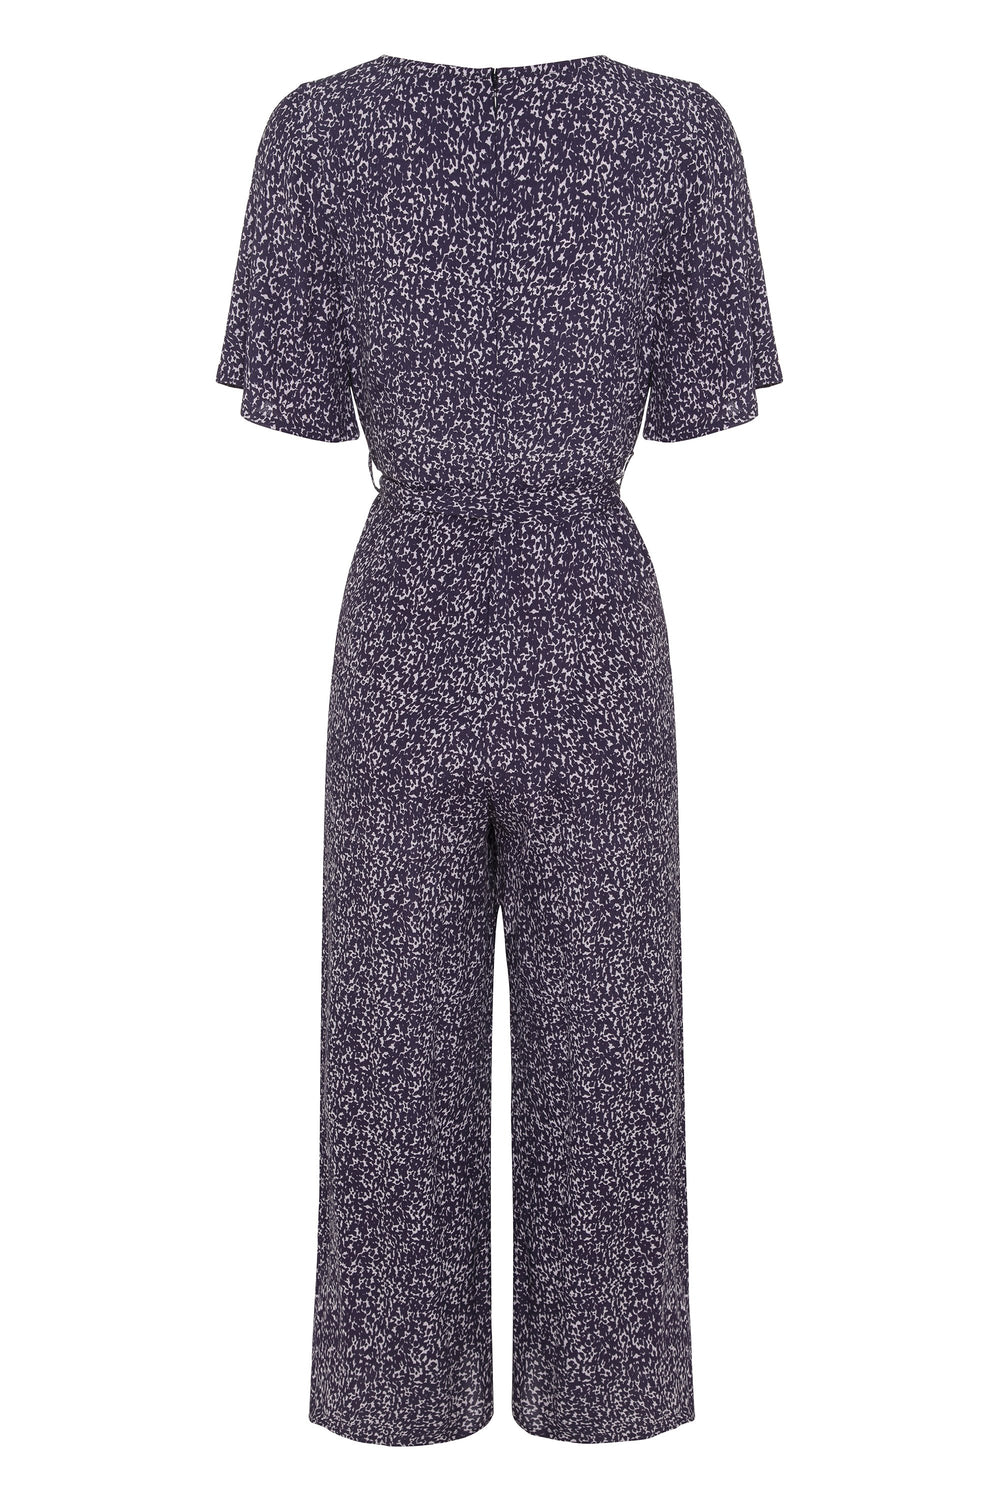 Effie Jumpsuit In Snow Leopard